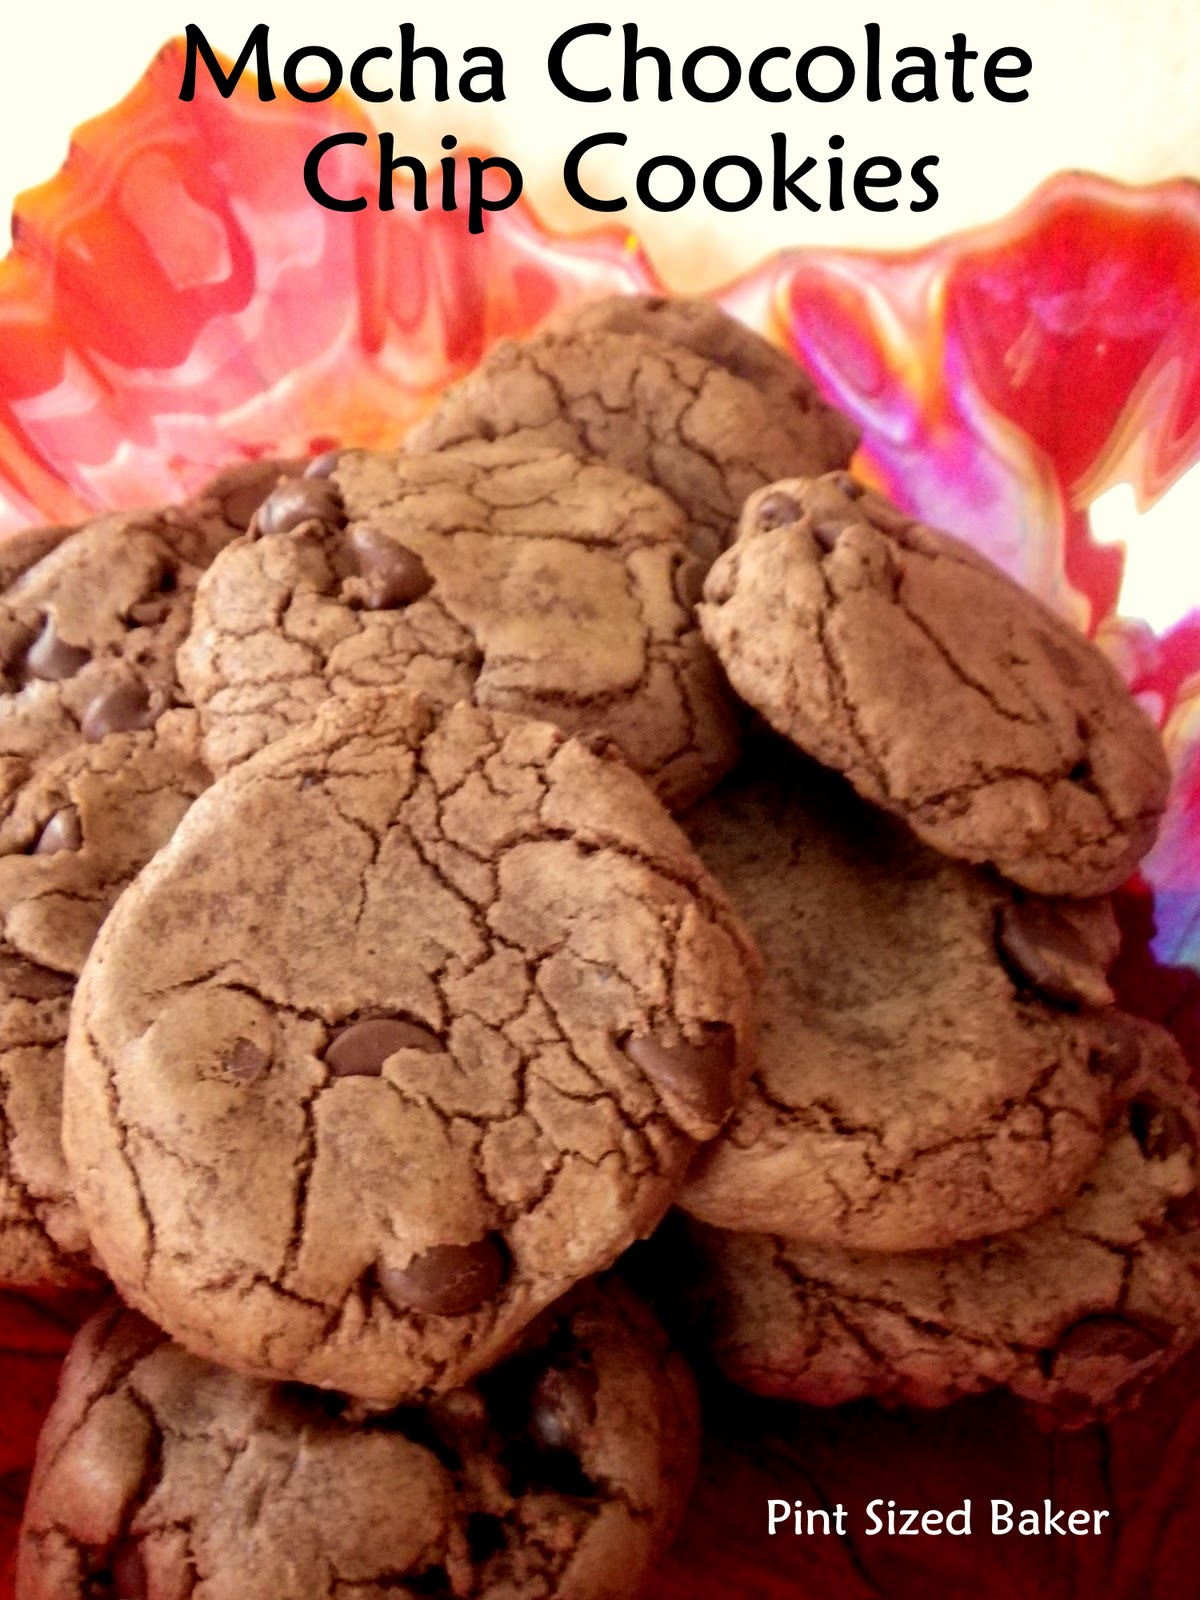 Mocha chocolate chip cookies pint sized baker for Better homes and gardens chocolate chip cookies